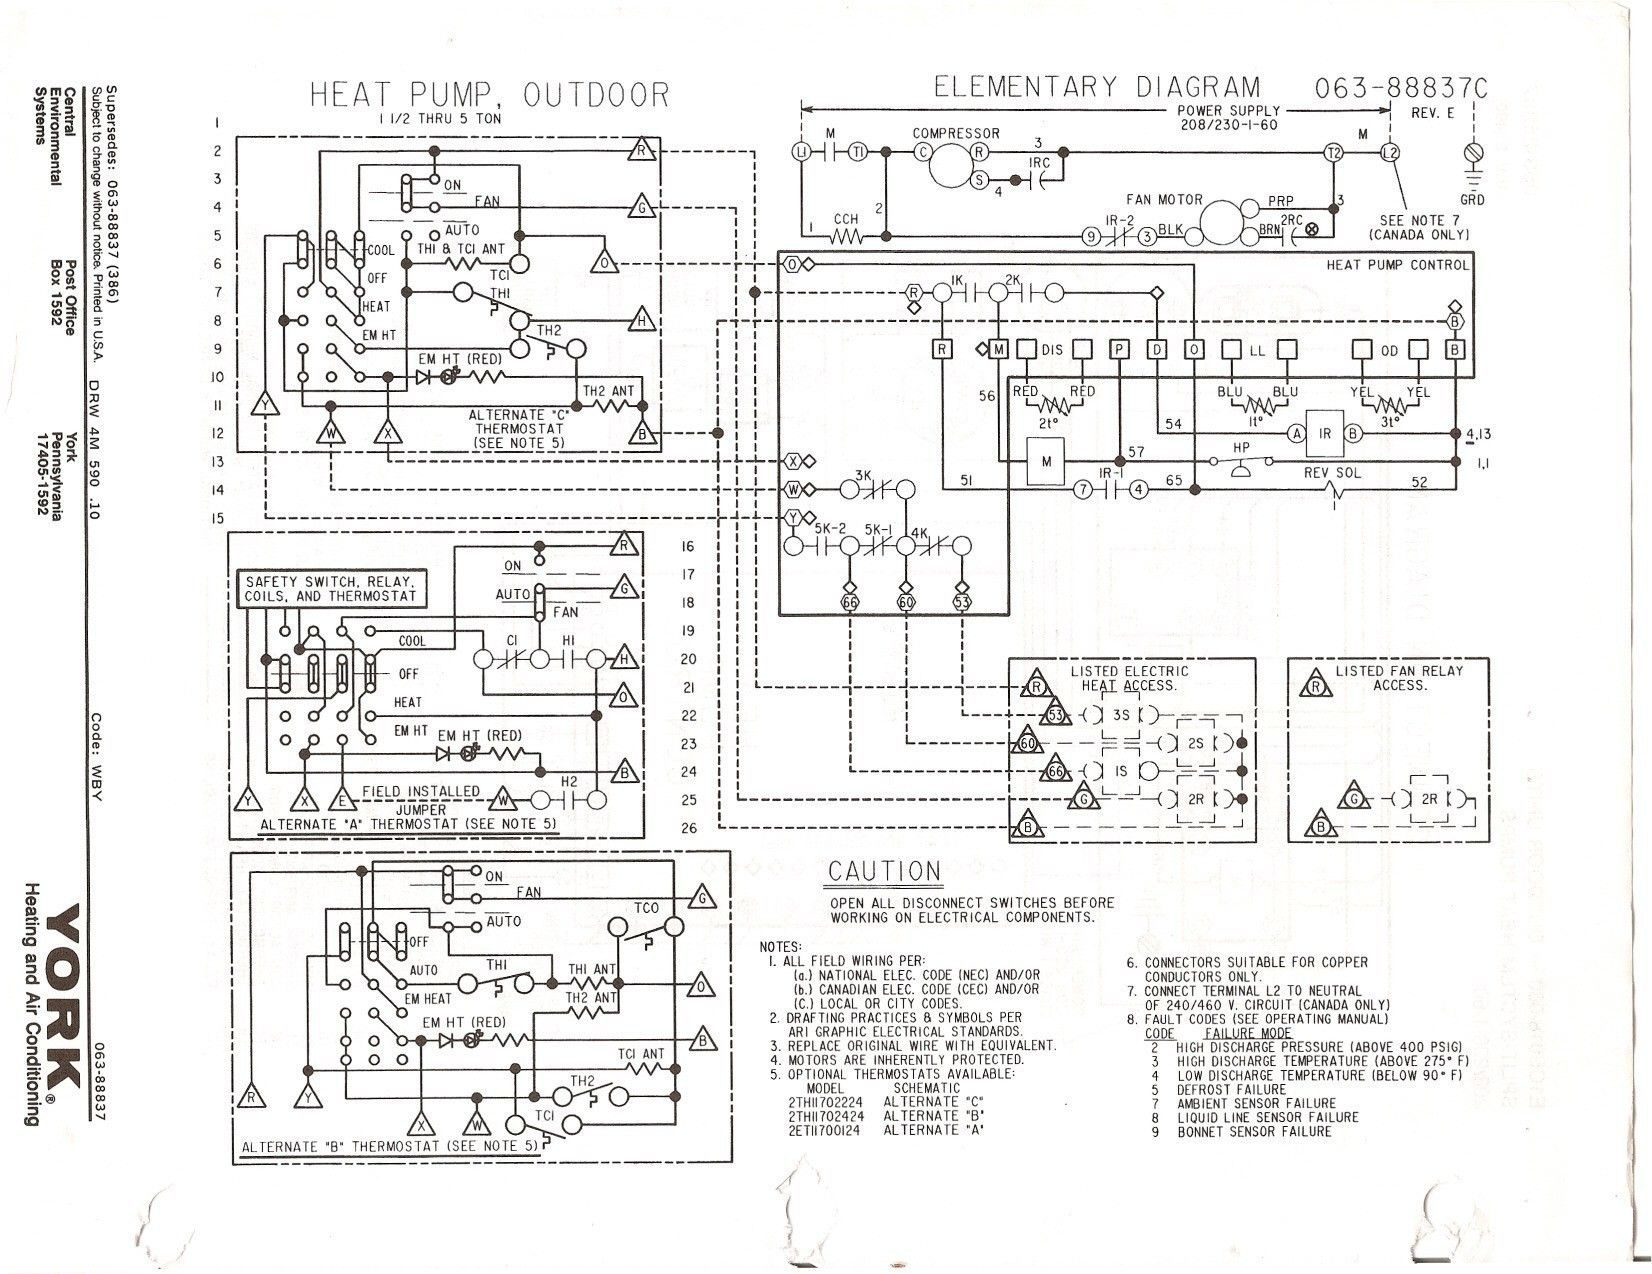 3 Phase Wiring Diagram For House With Images Central Heating